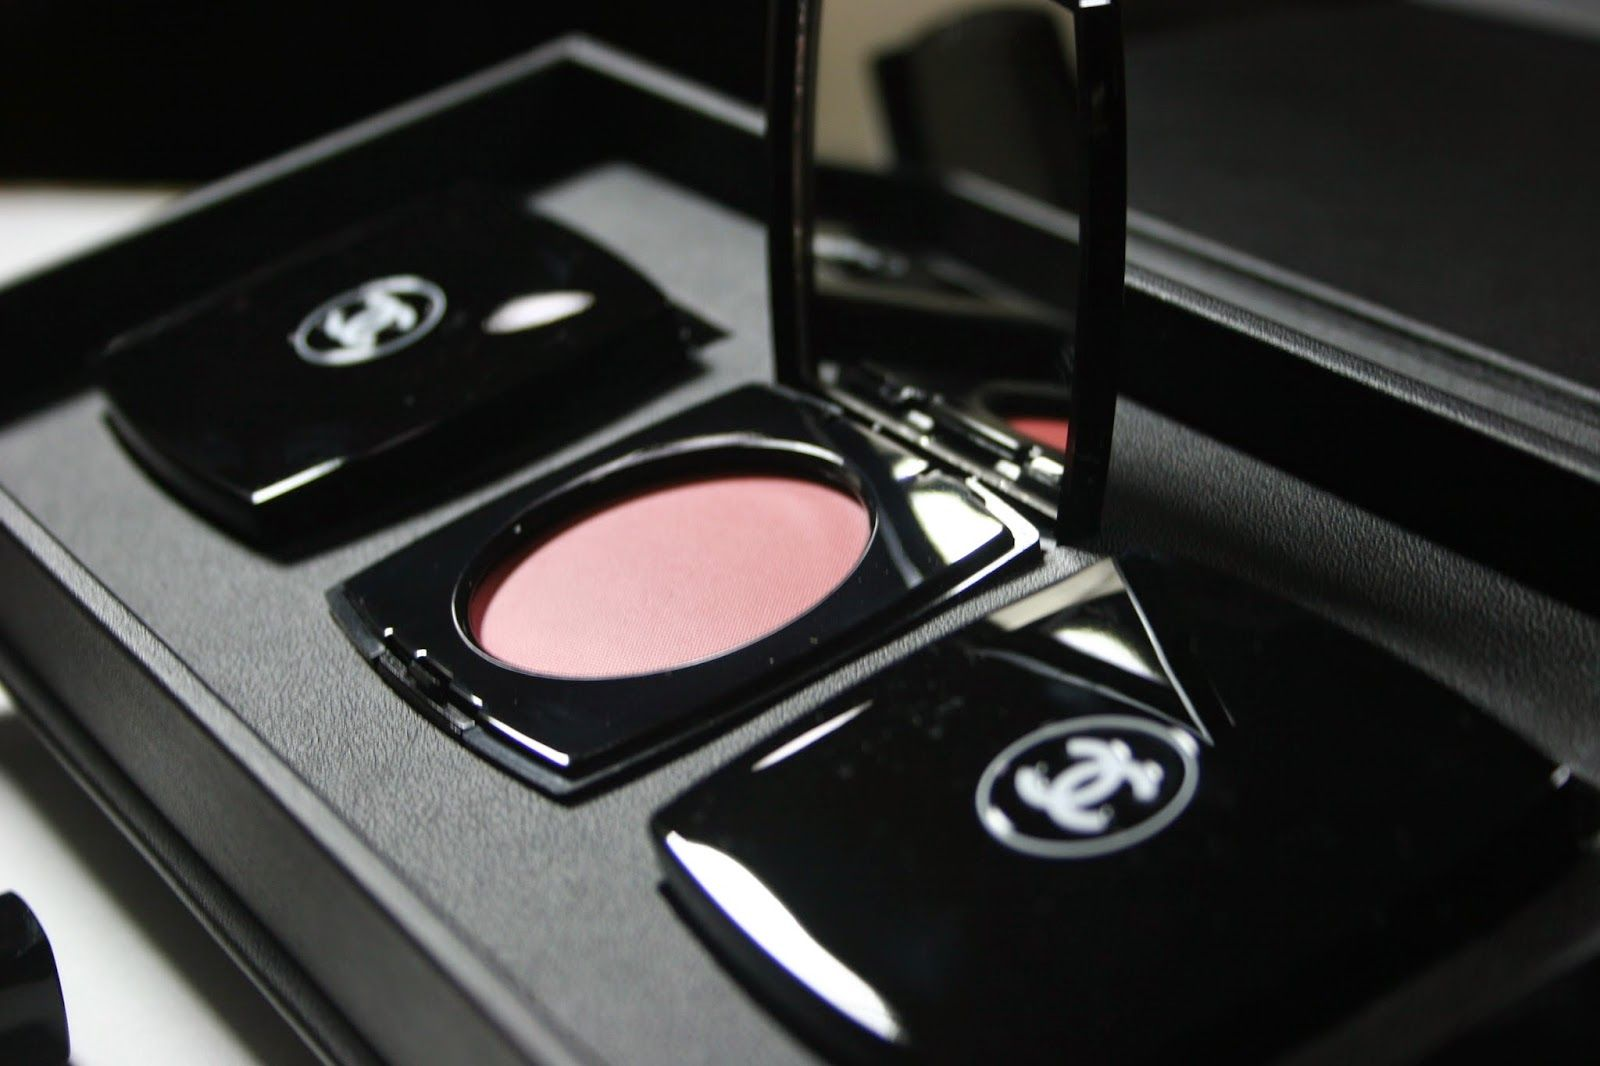 Just a Darling Life Product Review Chanel Makeup